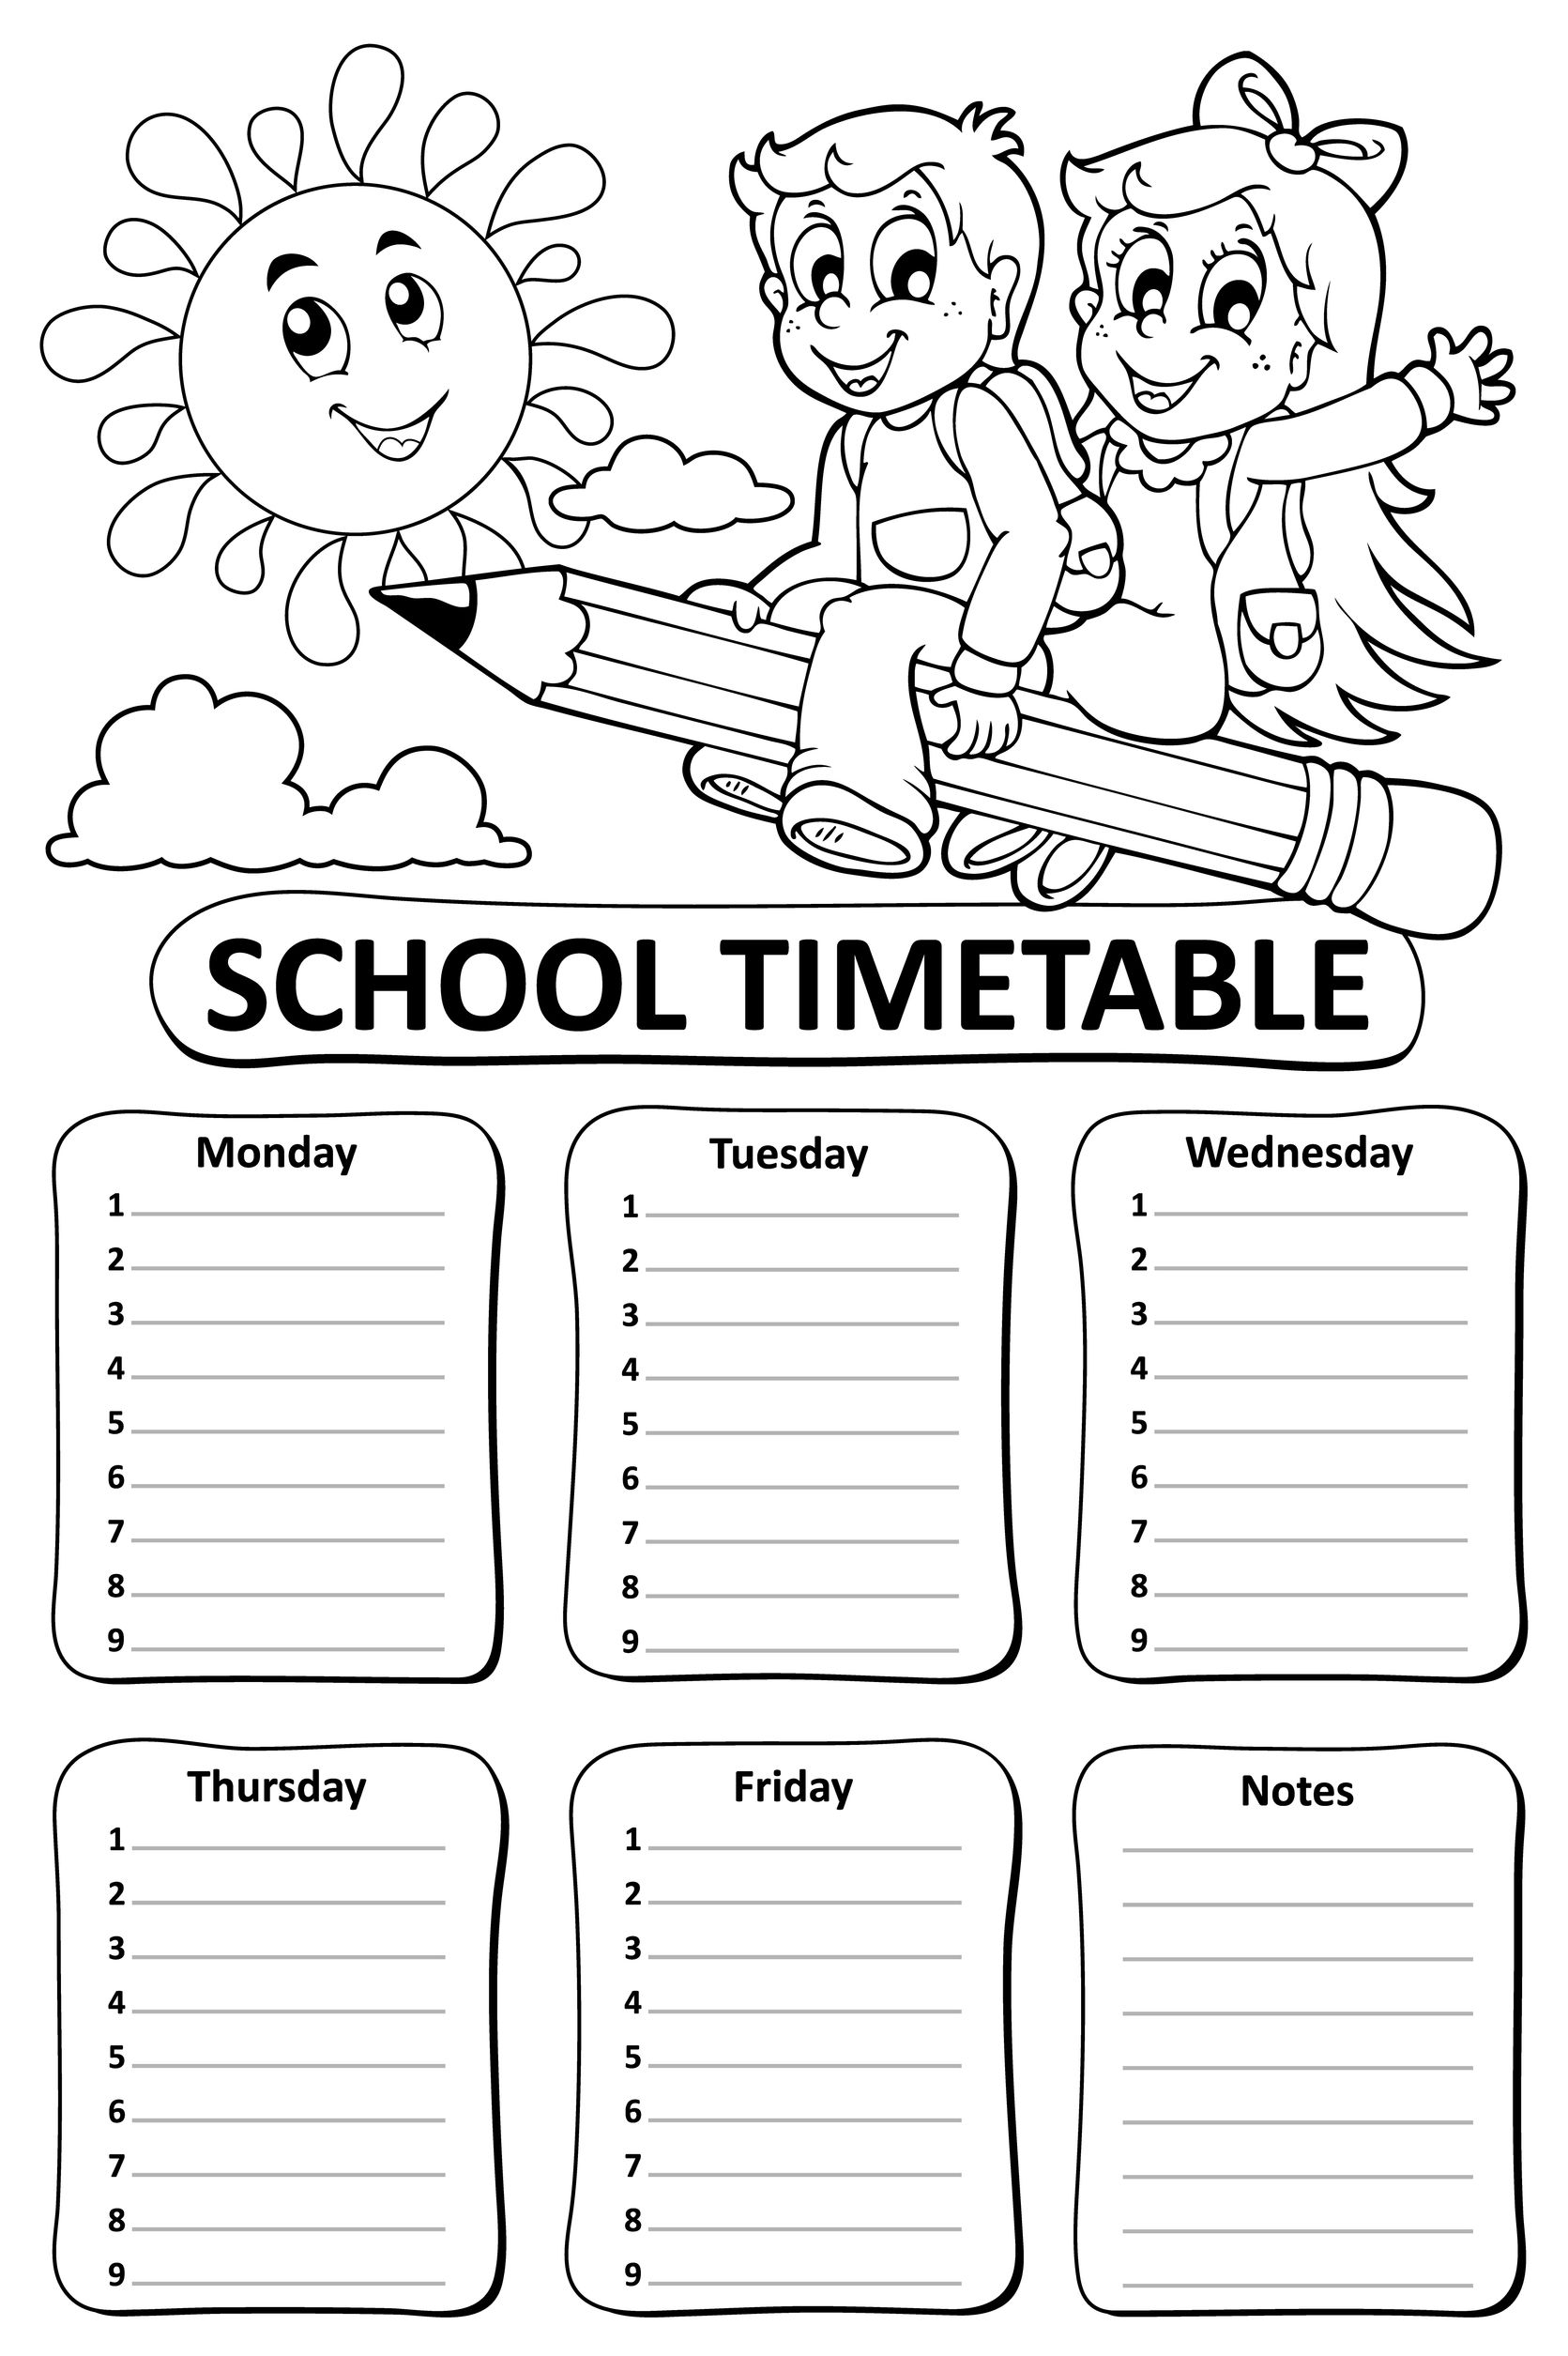 60233187 - black and white school timetable theme